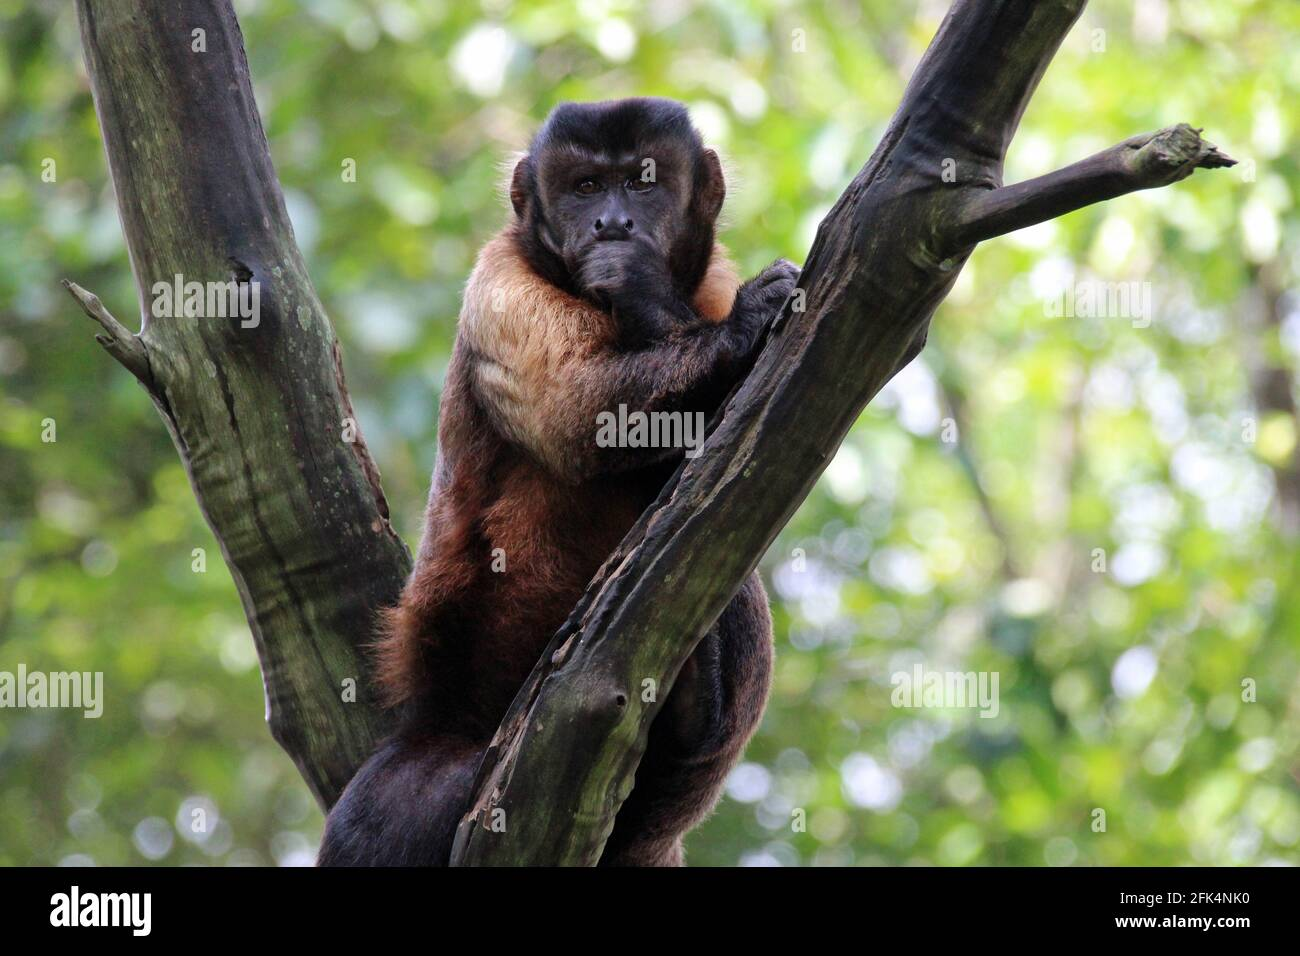 capuchin in a zoo in singapore Stock Photo